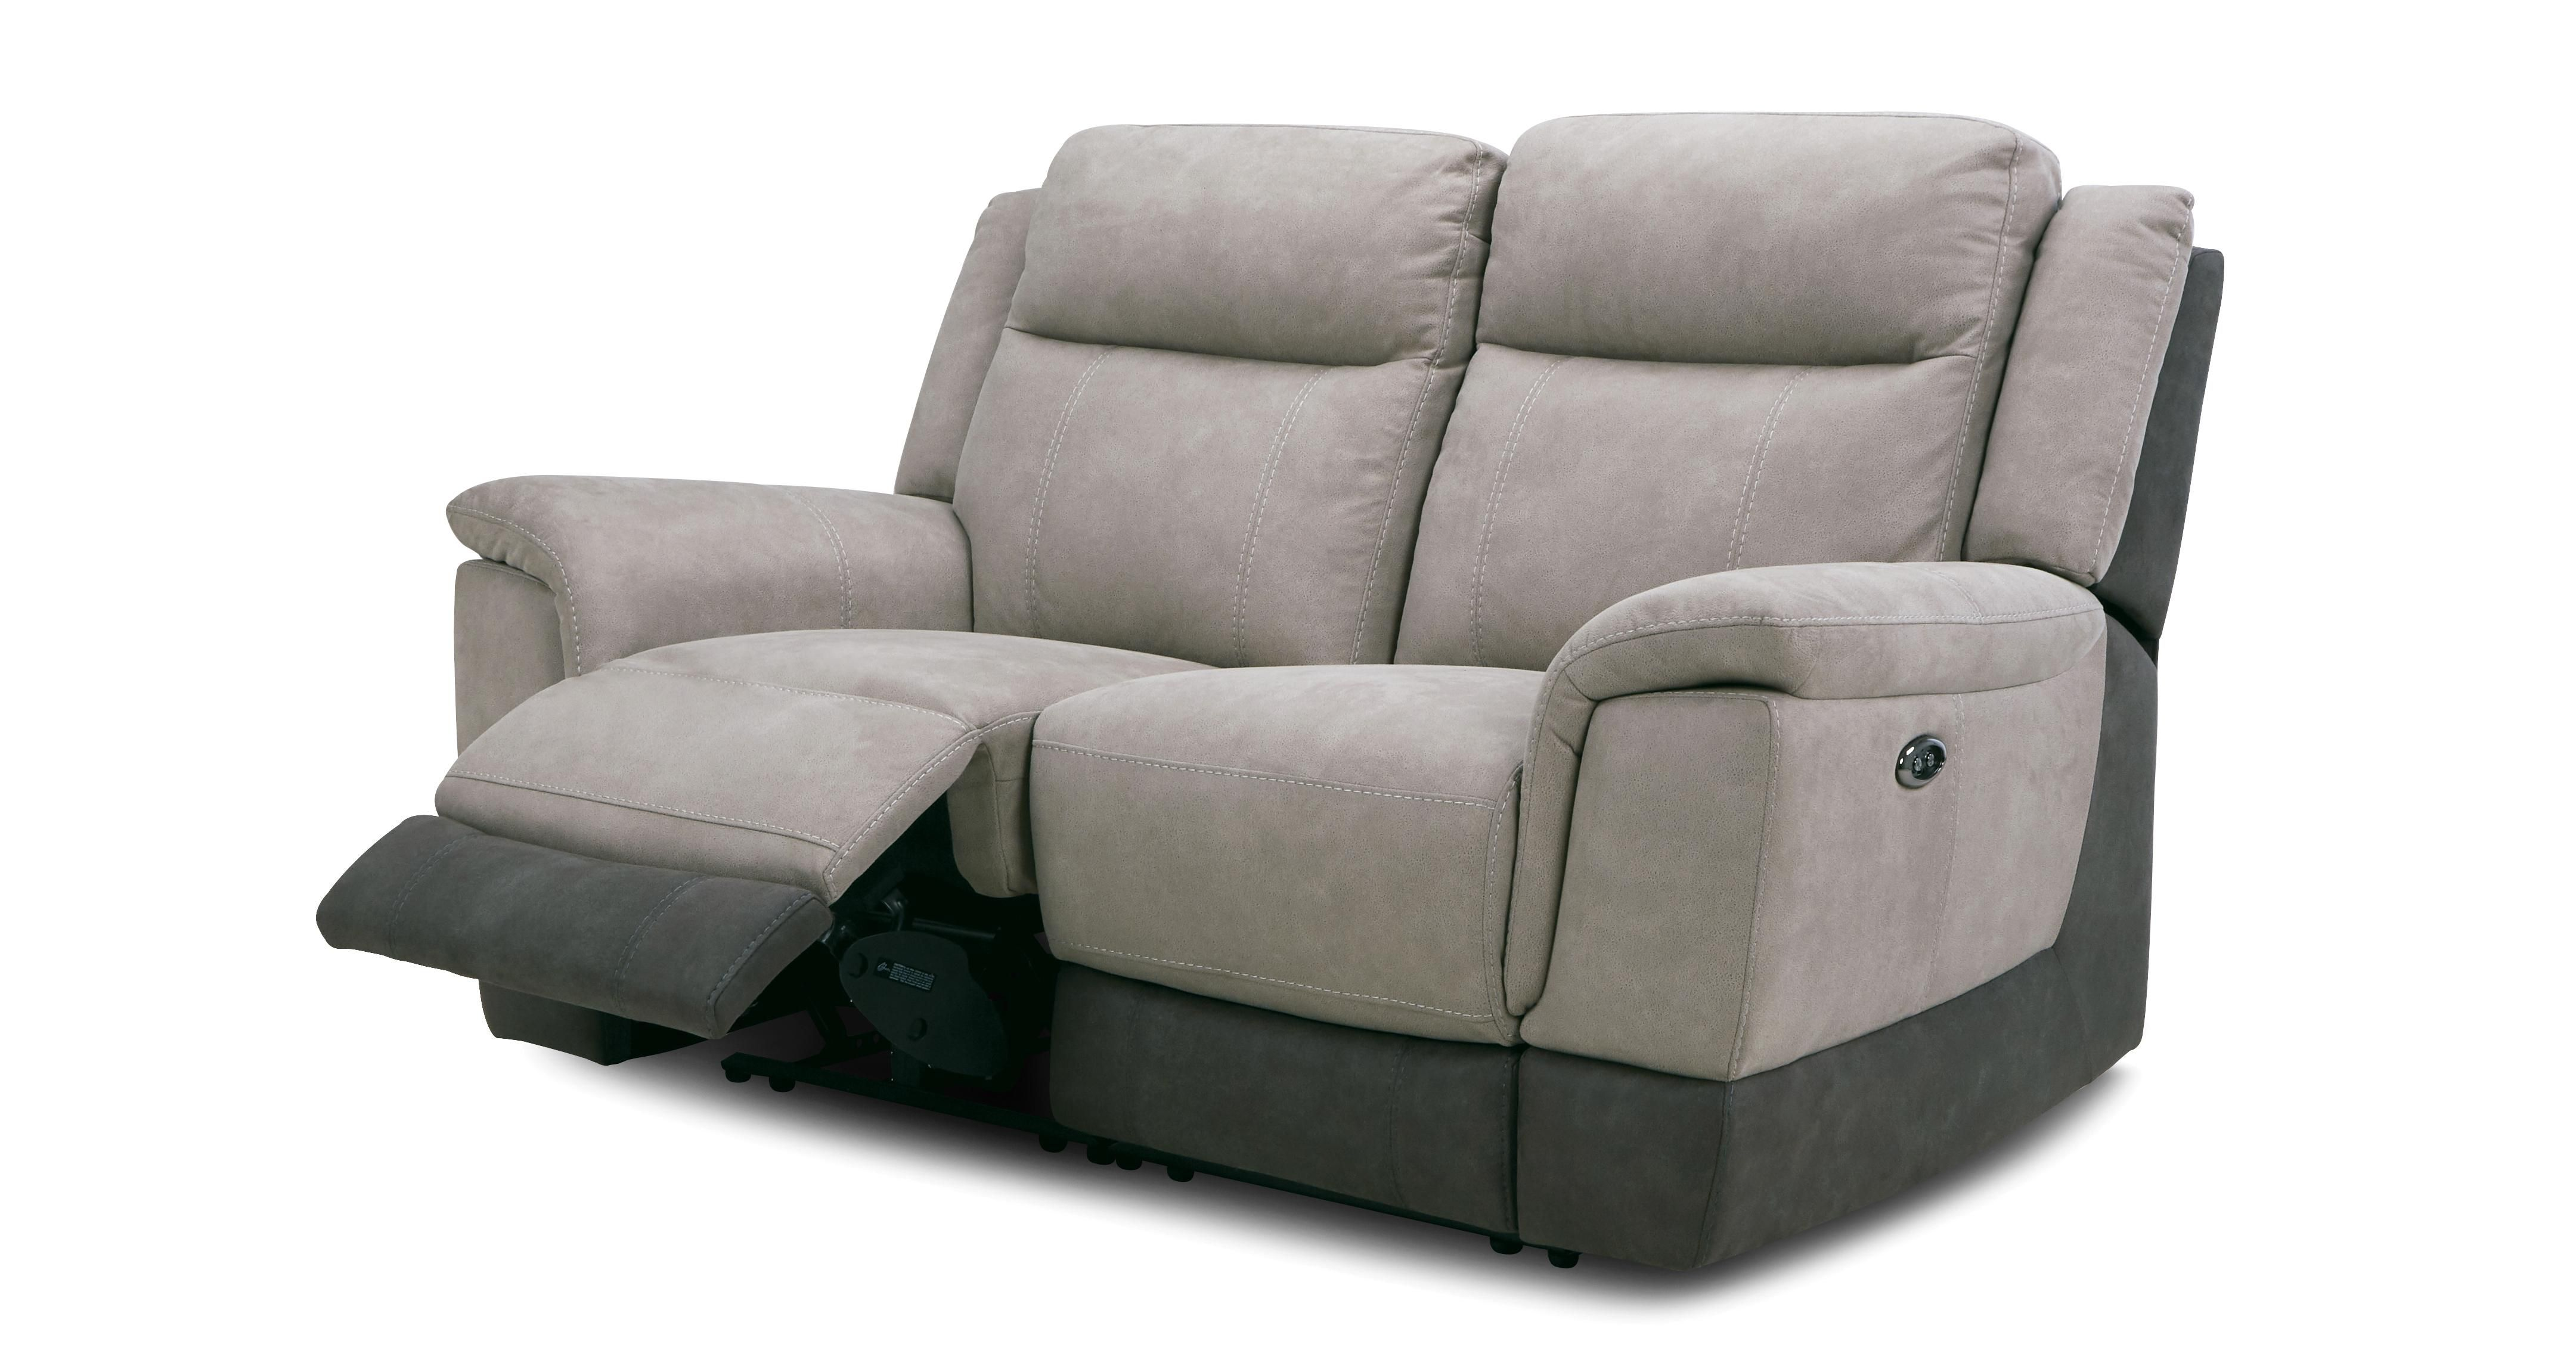 Dfs 2 Seater Power Plus Recliner Bambury In 2020 Recliner Power Recliners Home Decor